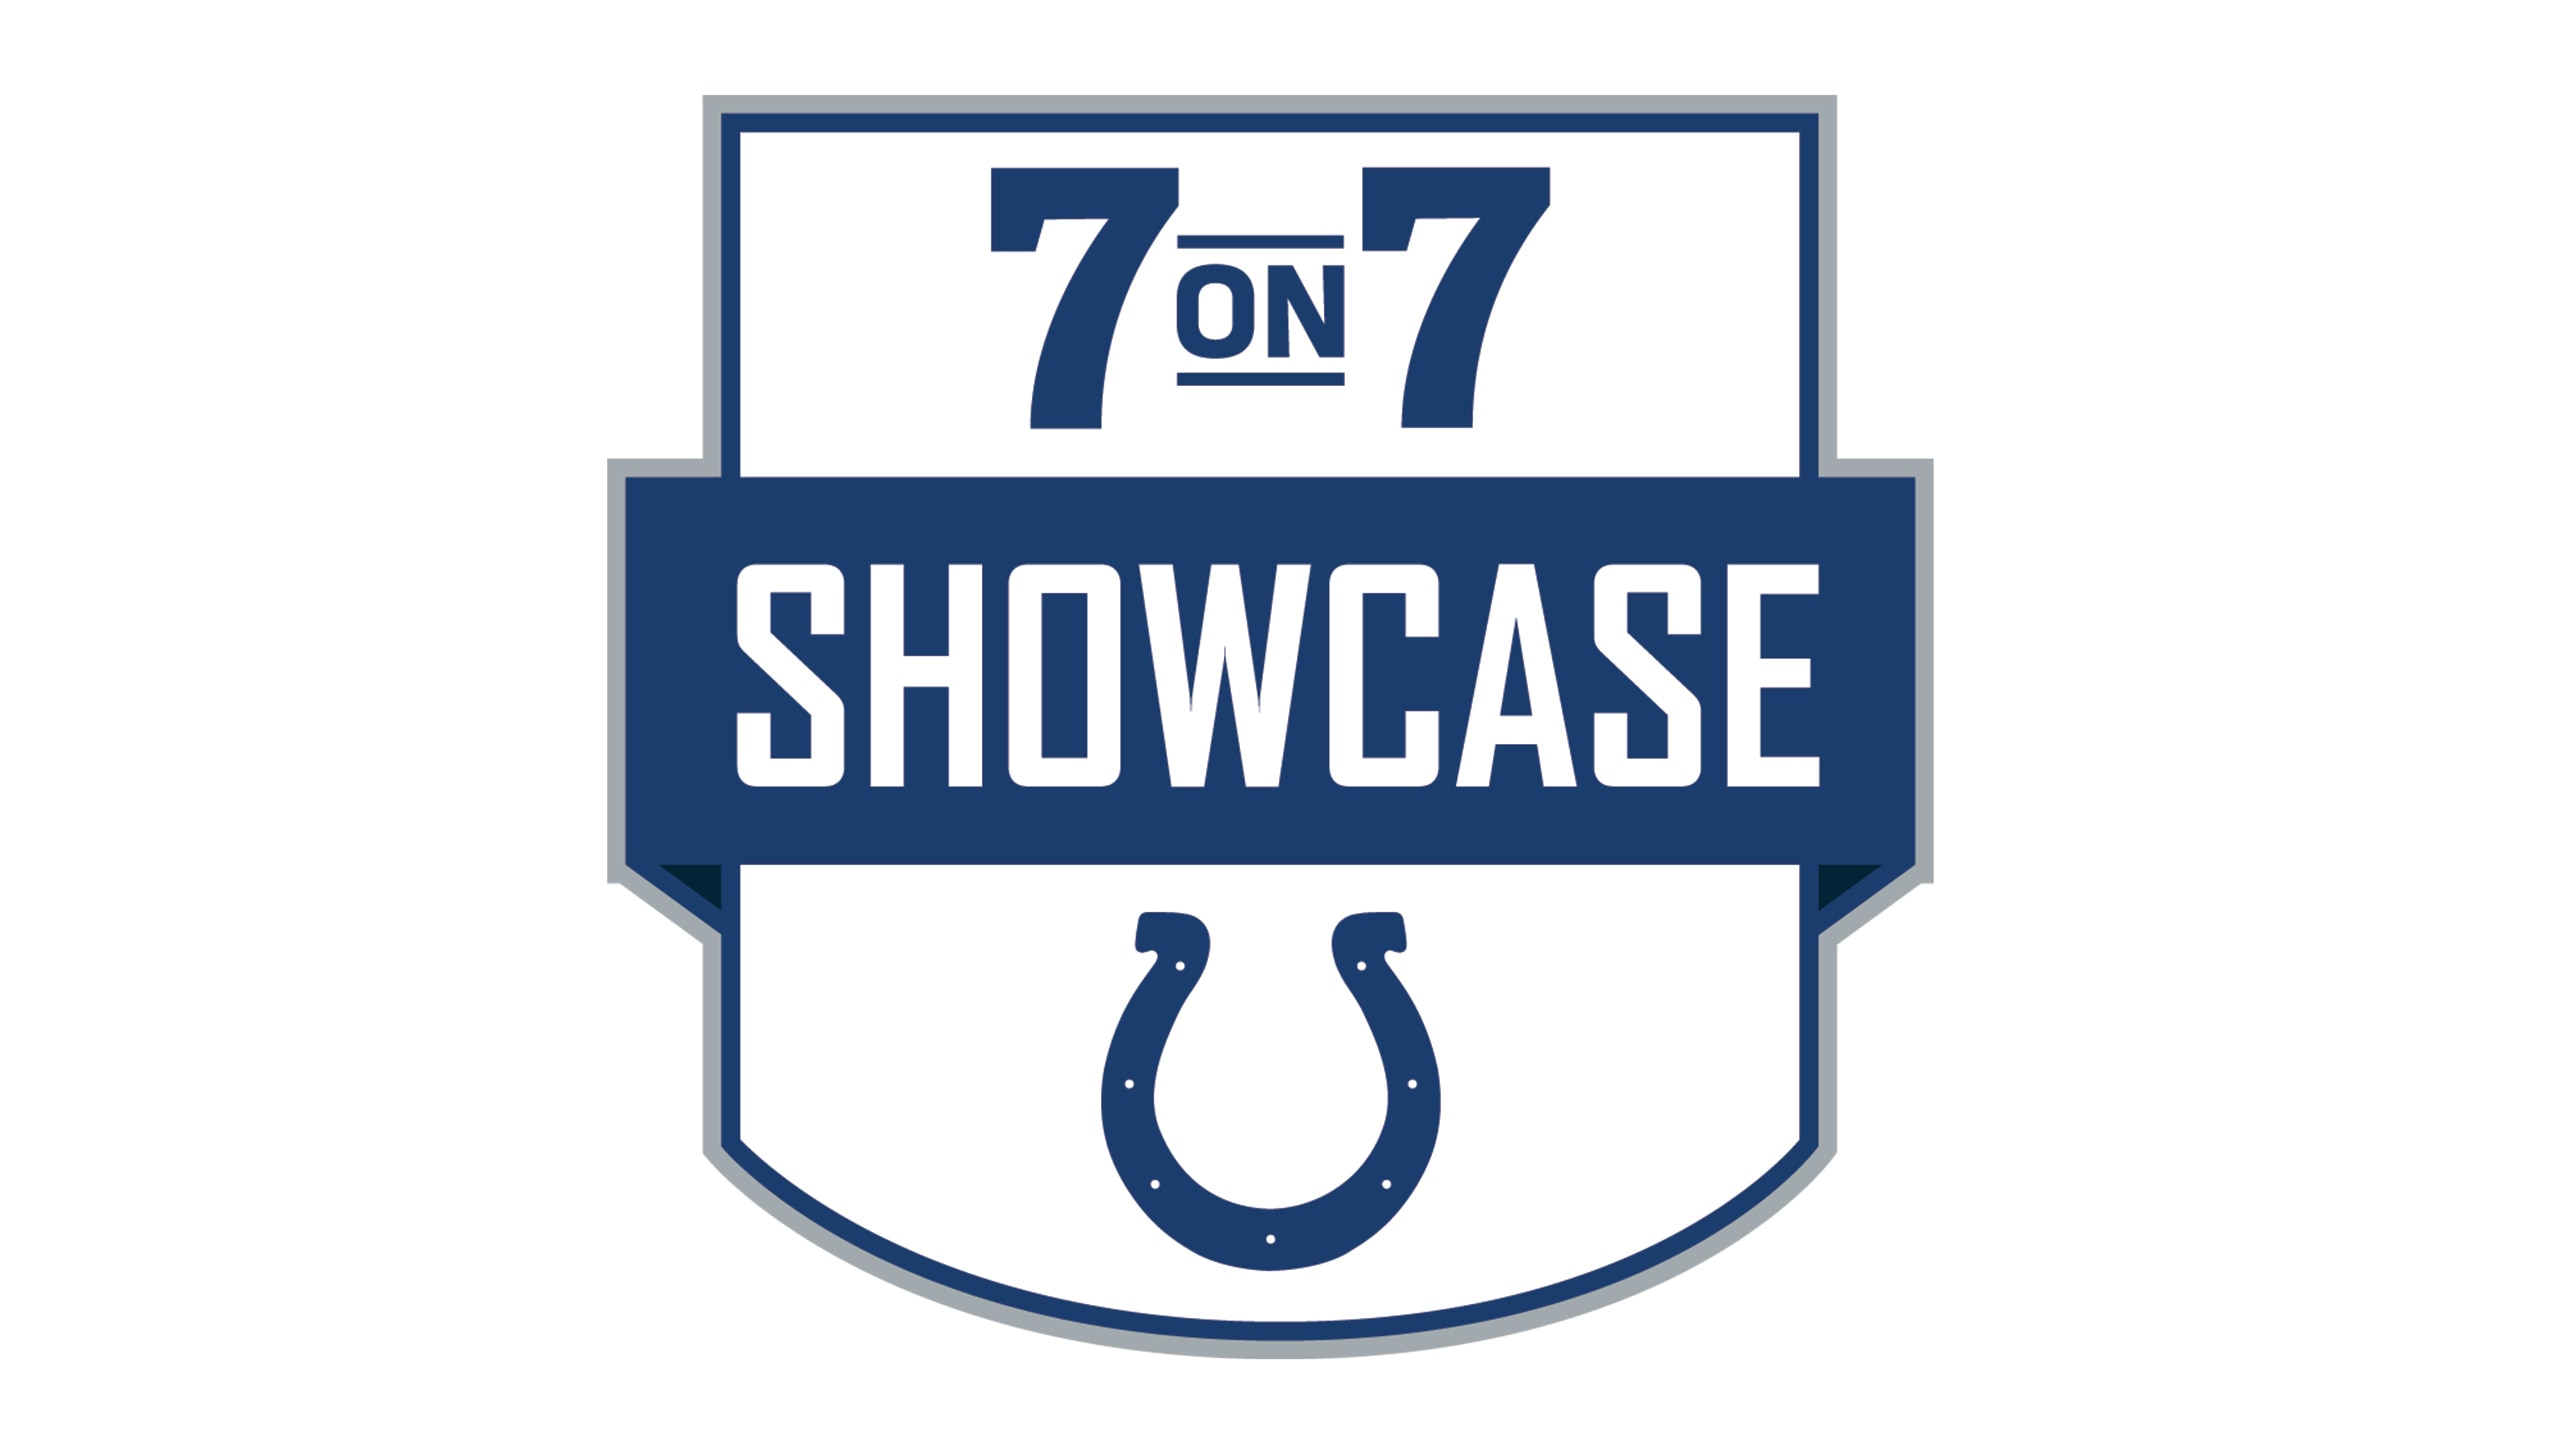 7-on-7 Showcase